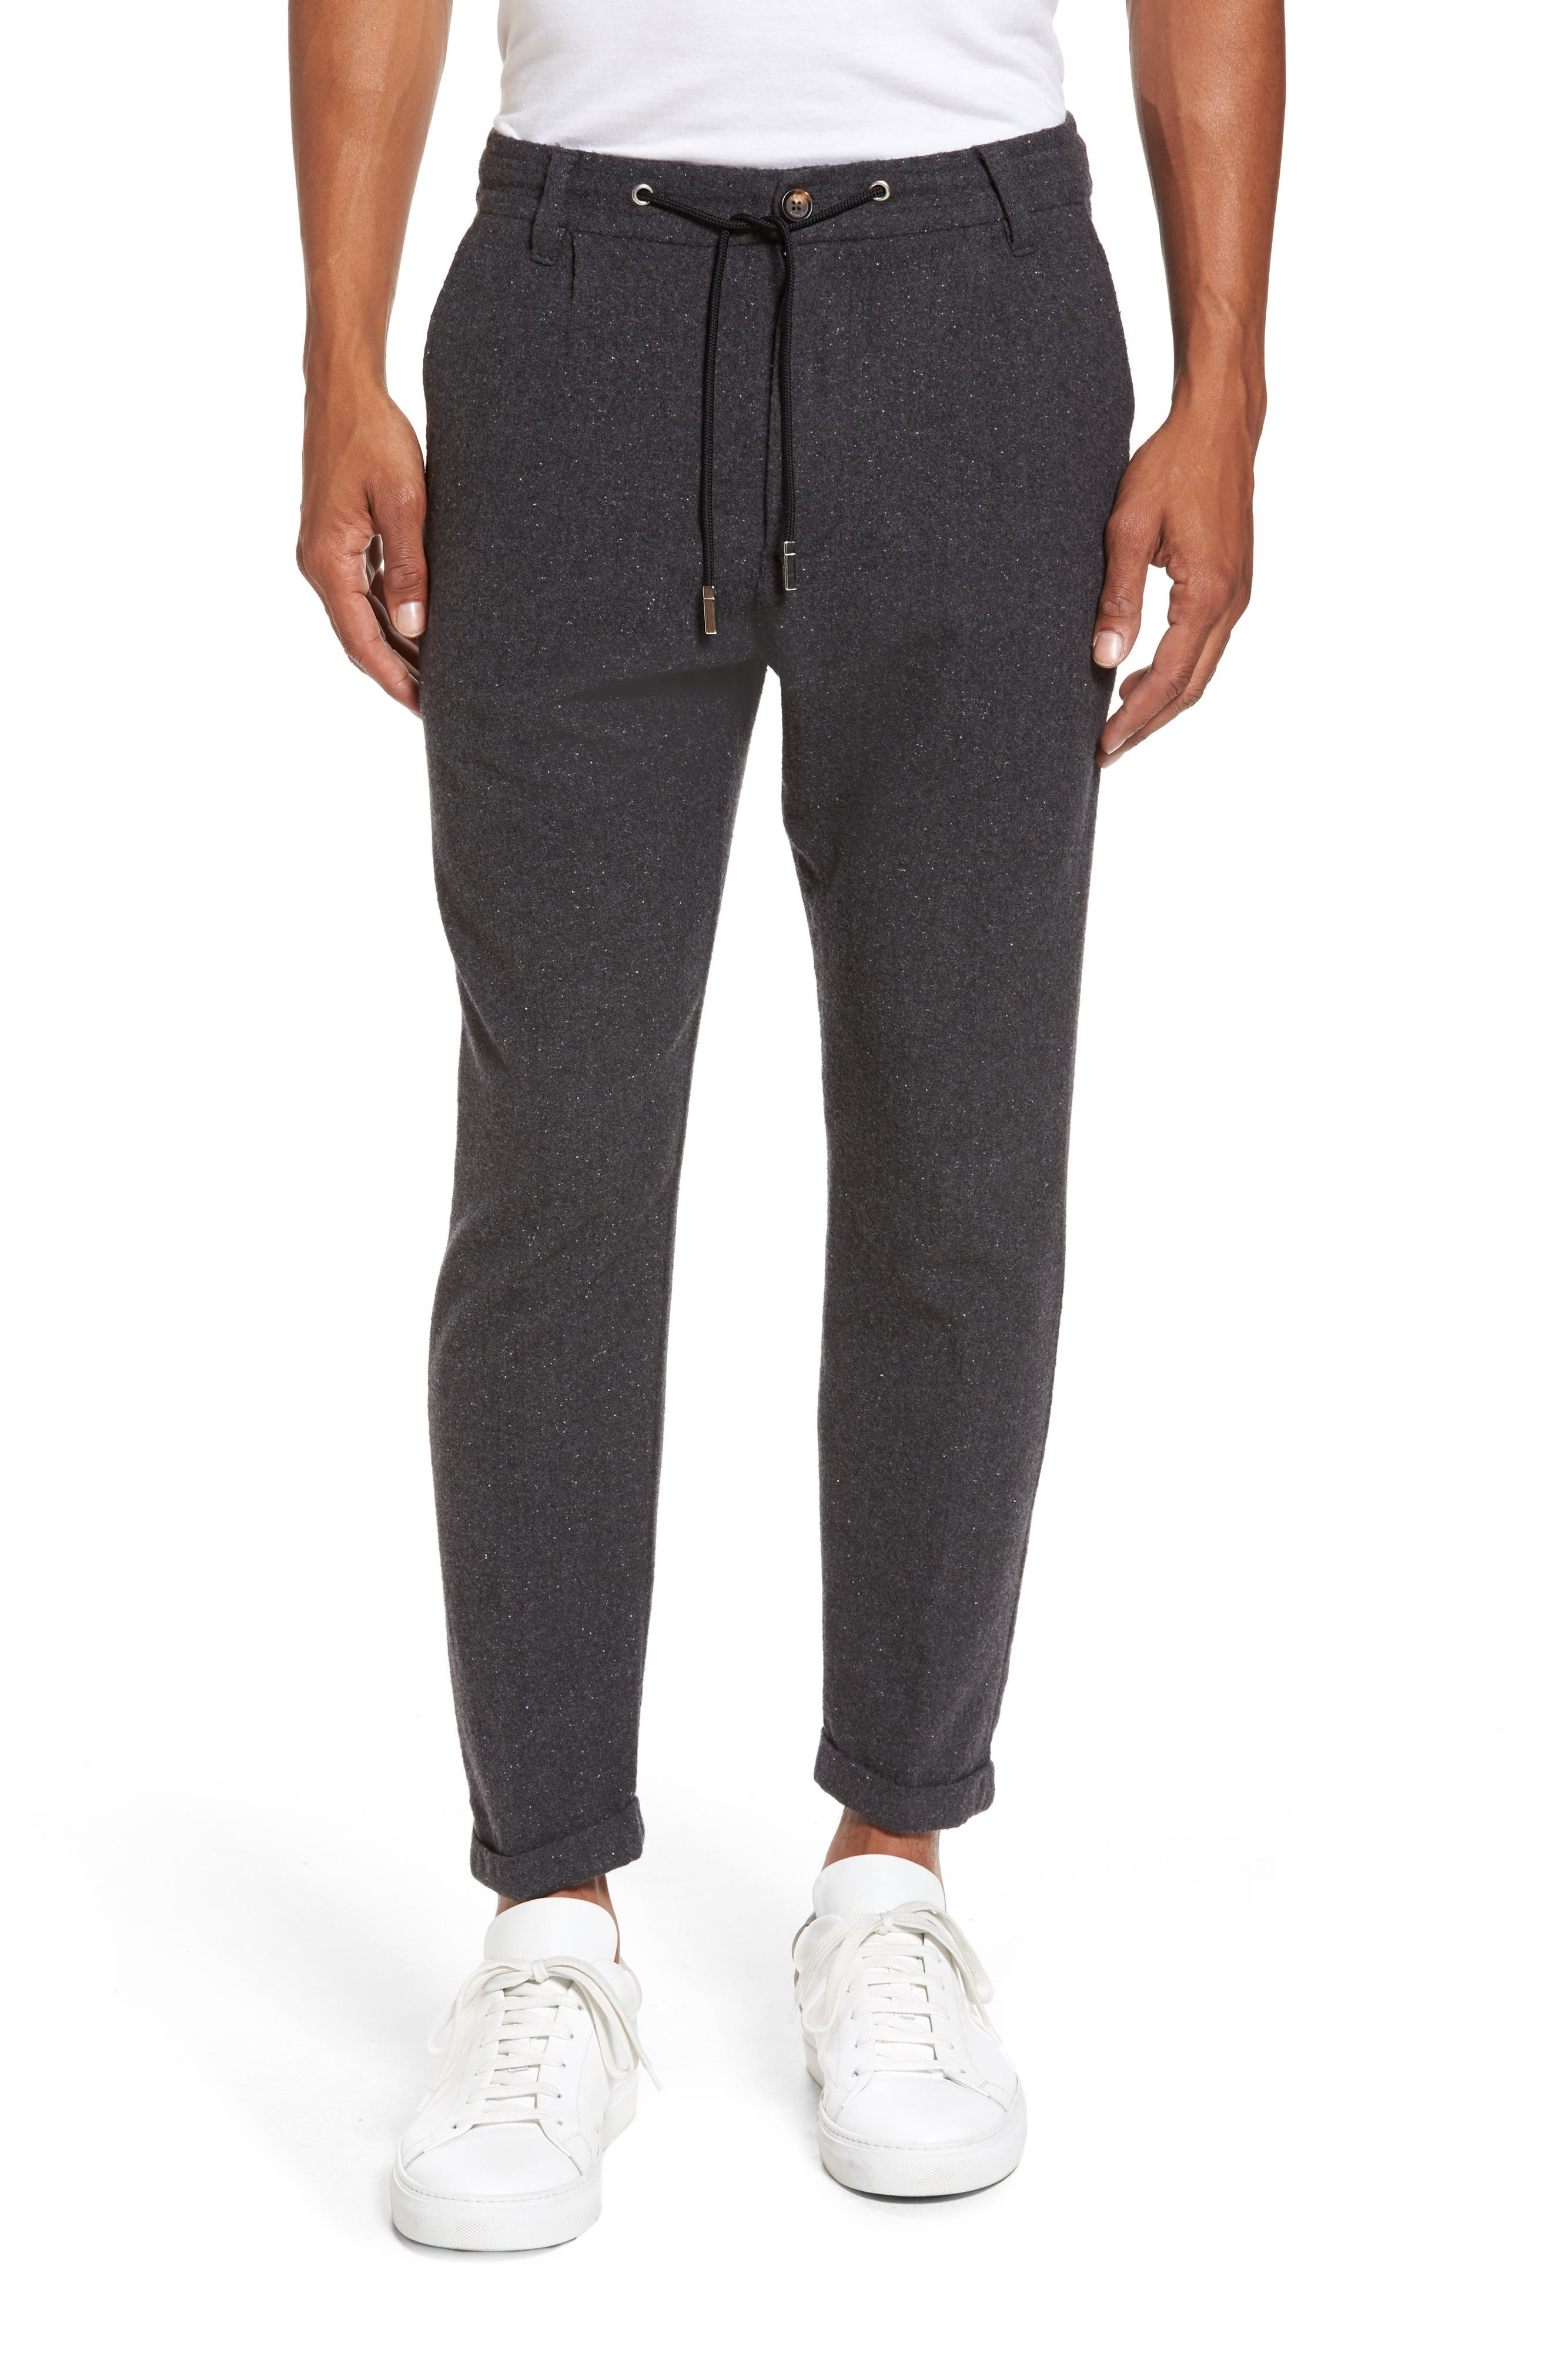 Donegal Stretch Wool Jogger Pants,                         Main,                         color, Dark Grey